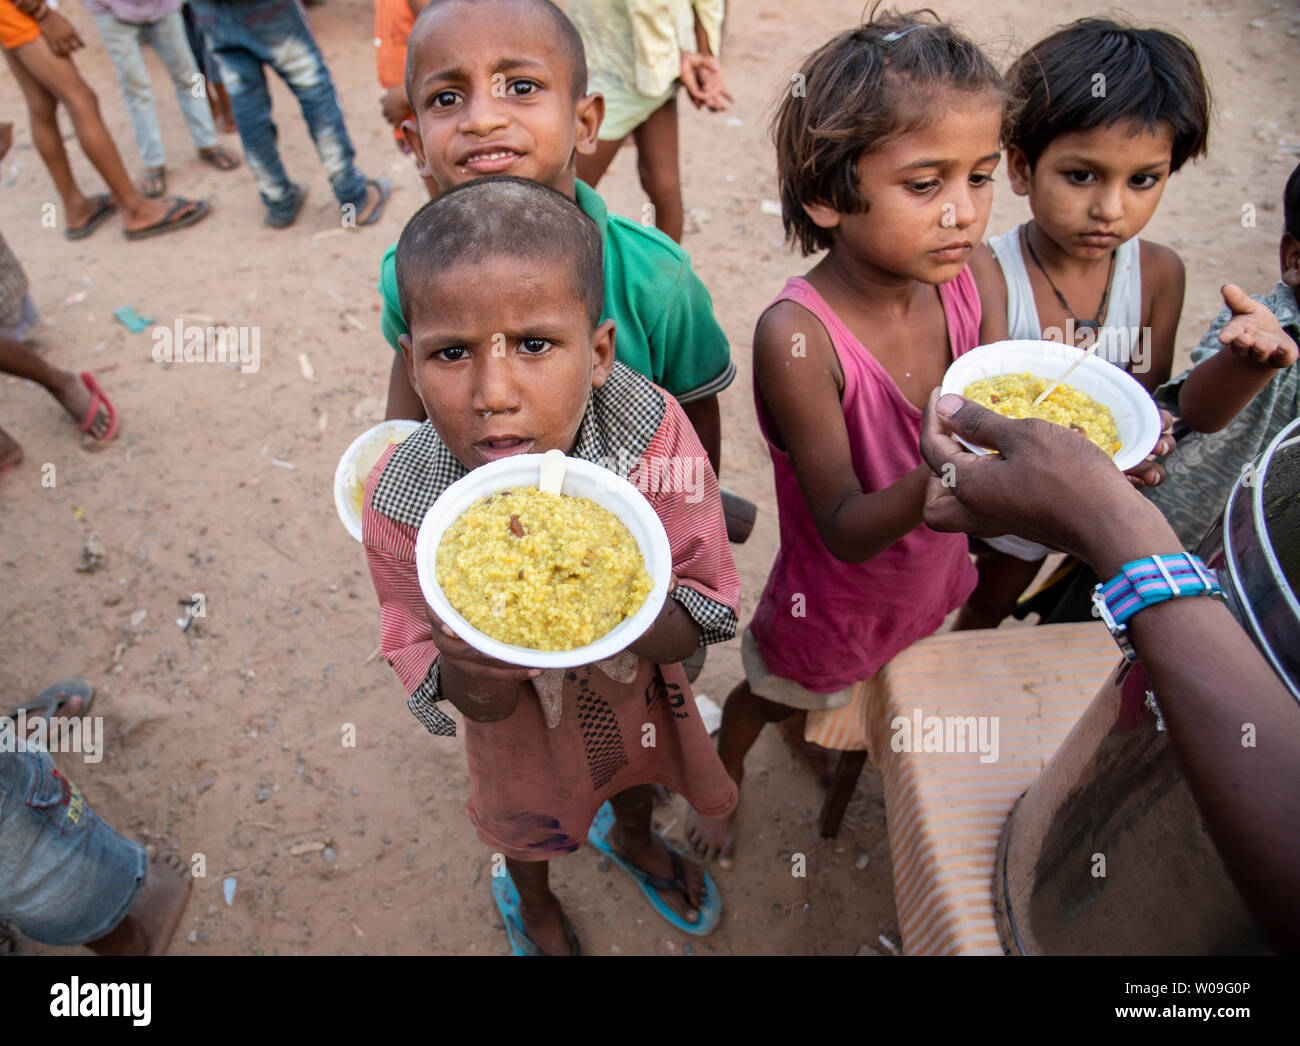 Poor Children High Resolution Stock Photography And Images Alamy